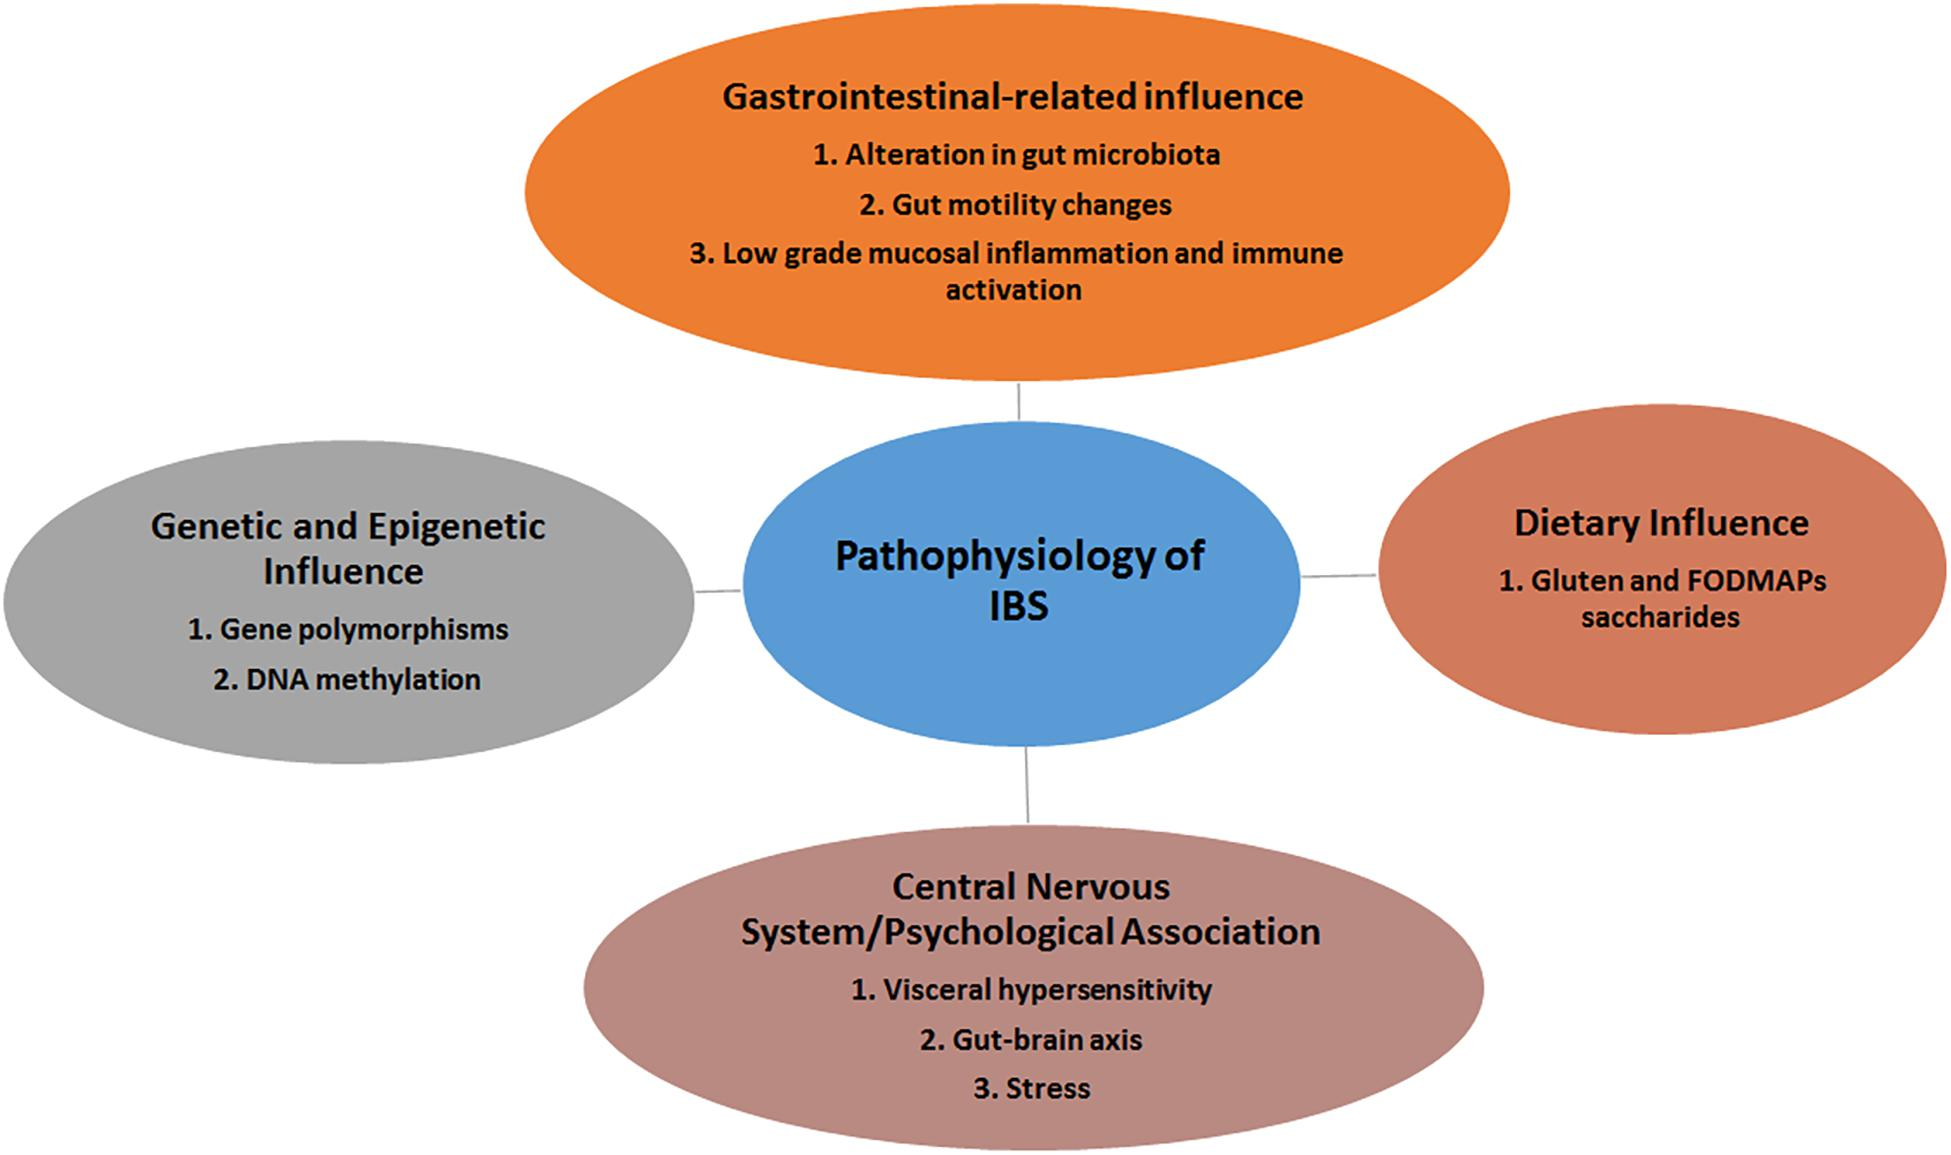 Frontiers | The Microbiome and Irritable Bowel Syndrome – A